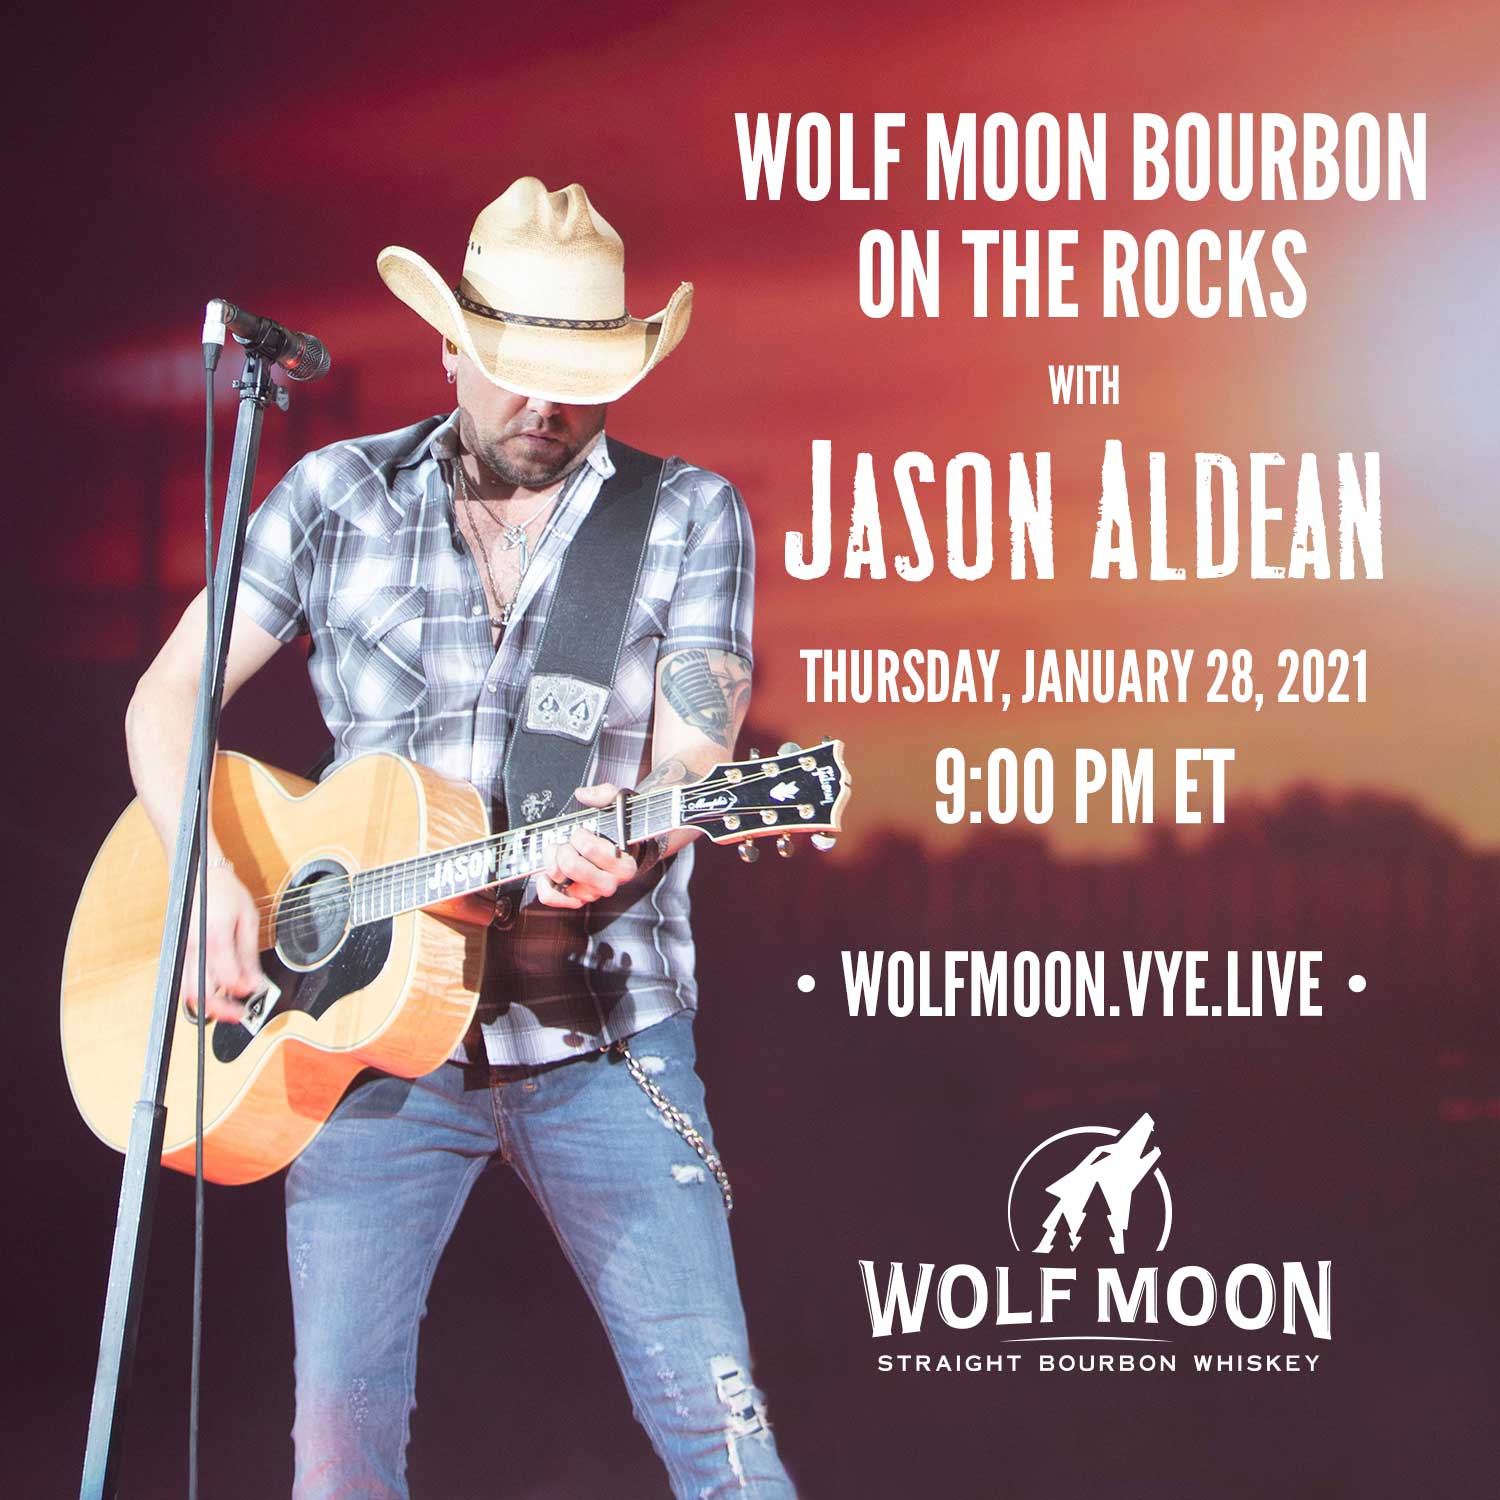 WOLF MOON BOURBON PRESENTS A SPECIAL ONE NIGHT PERFORMANCE WITH JASON ALDEAN